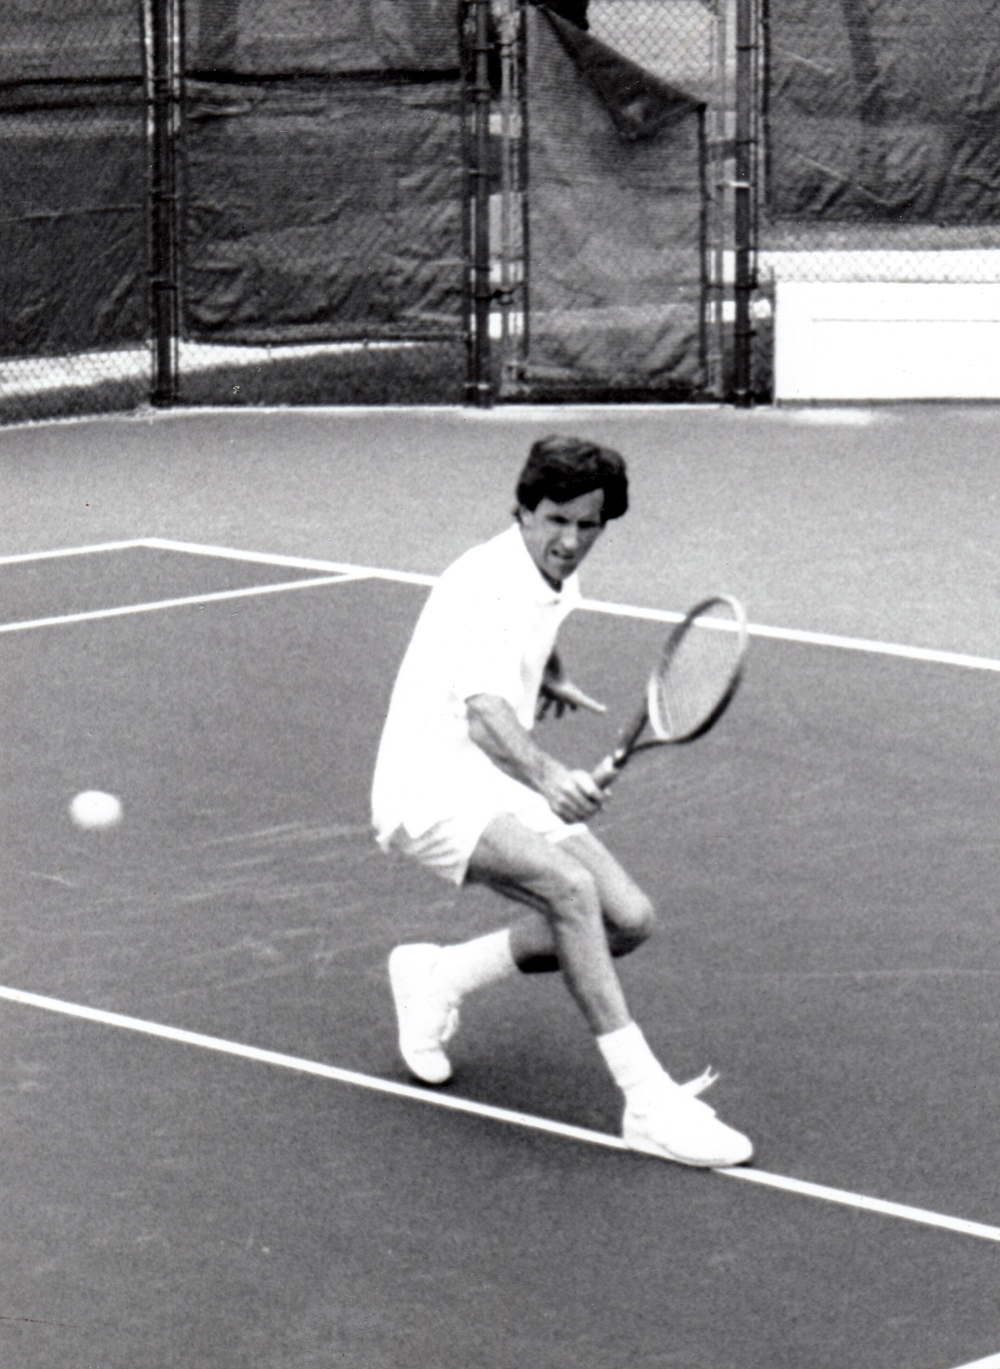 Paul discovered tennis as a teenager and it turned into a lifelong passion.